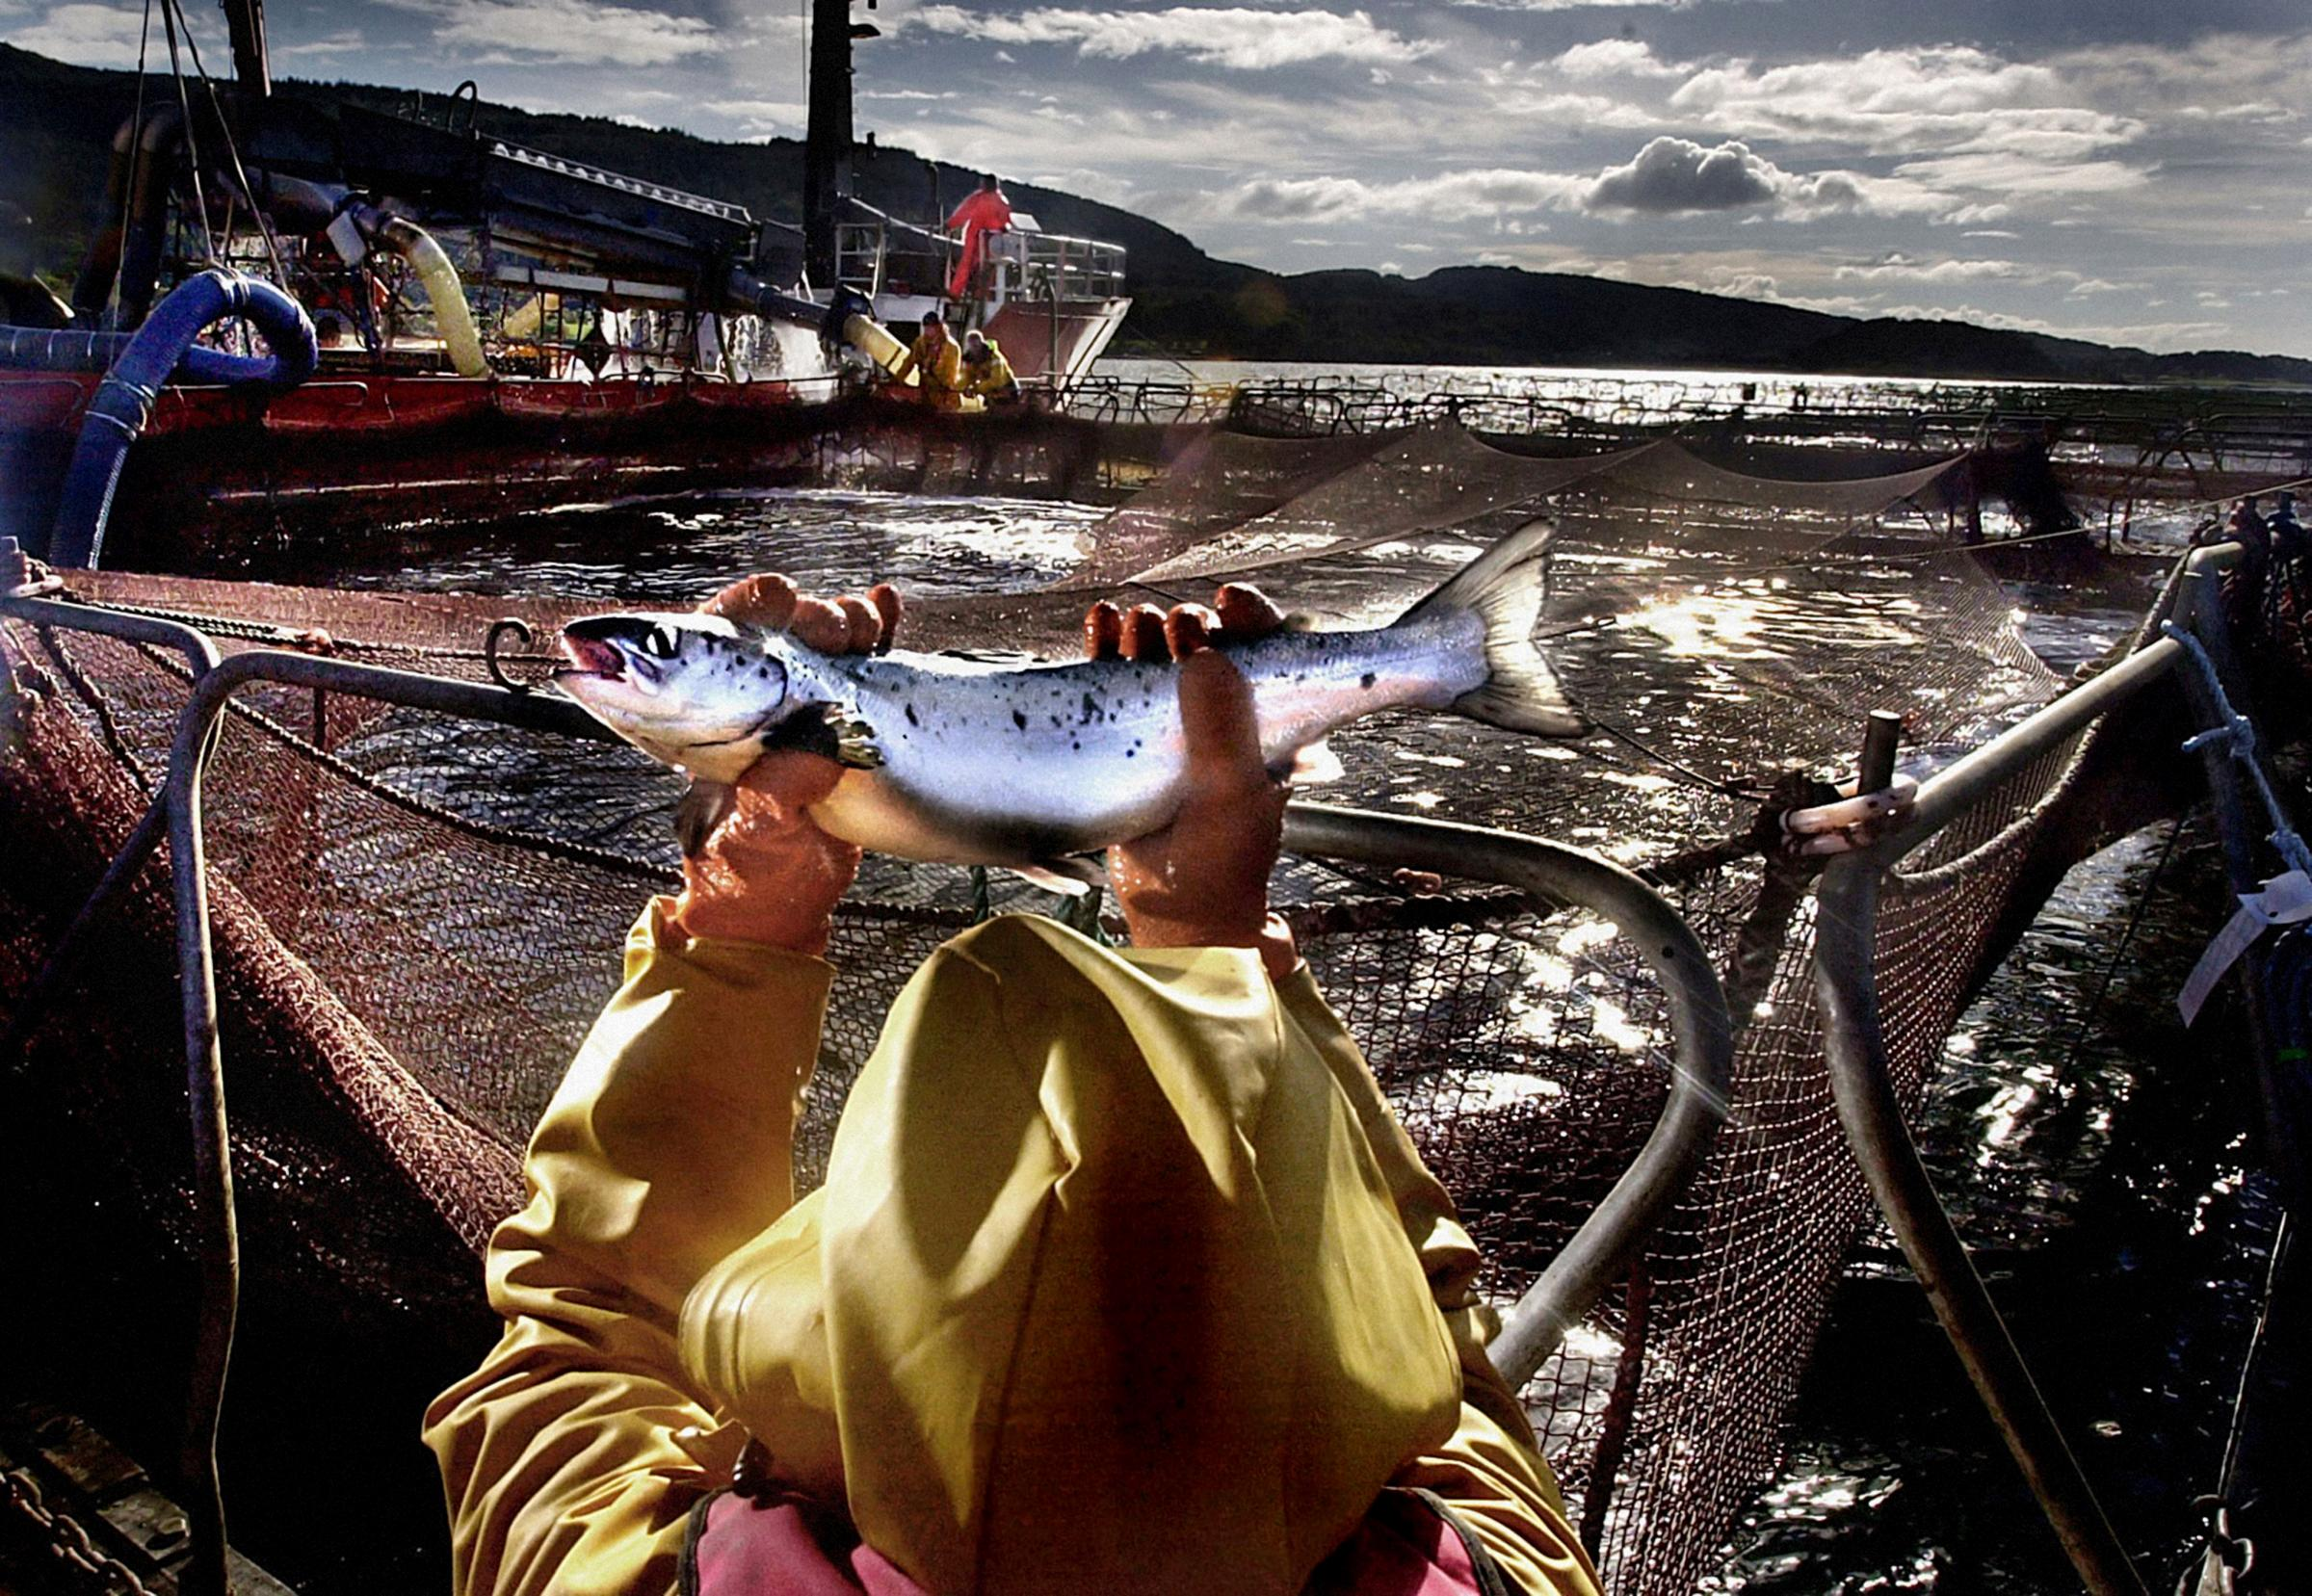 Salmon farmers 'must address serious concerns before expanding'